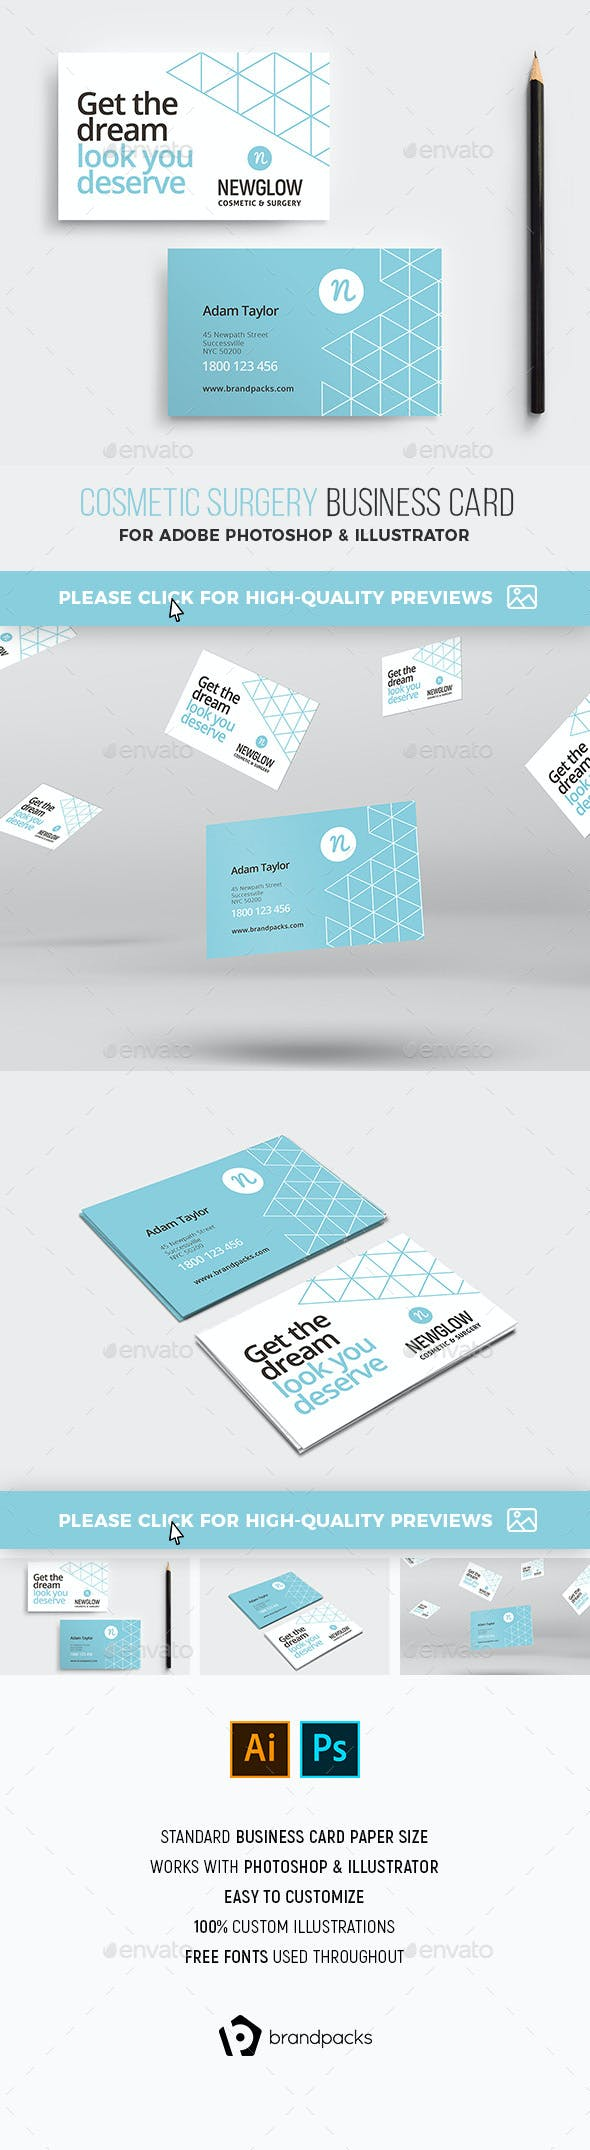 Cosmetic Business Card Template By Brandpacks Graphicriver